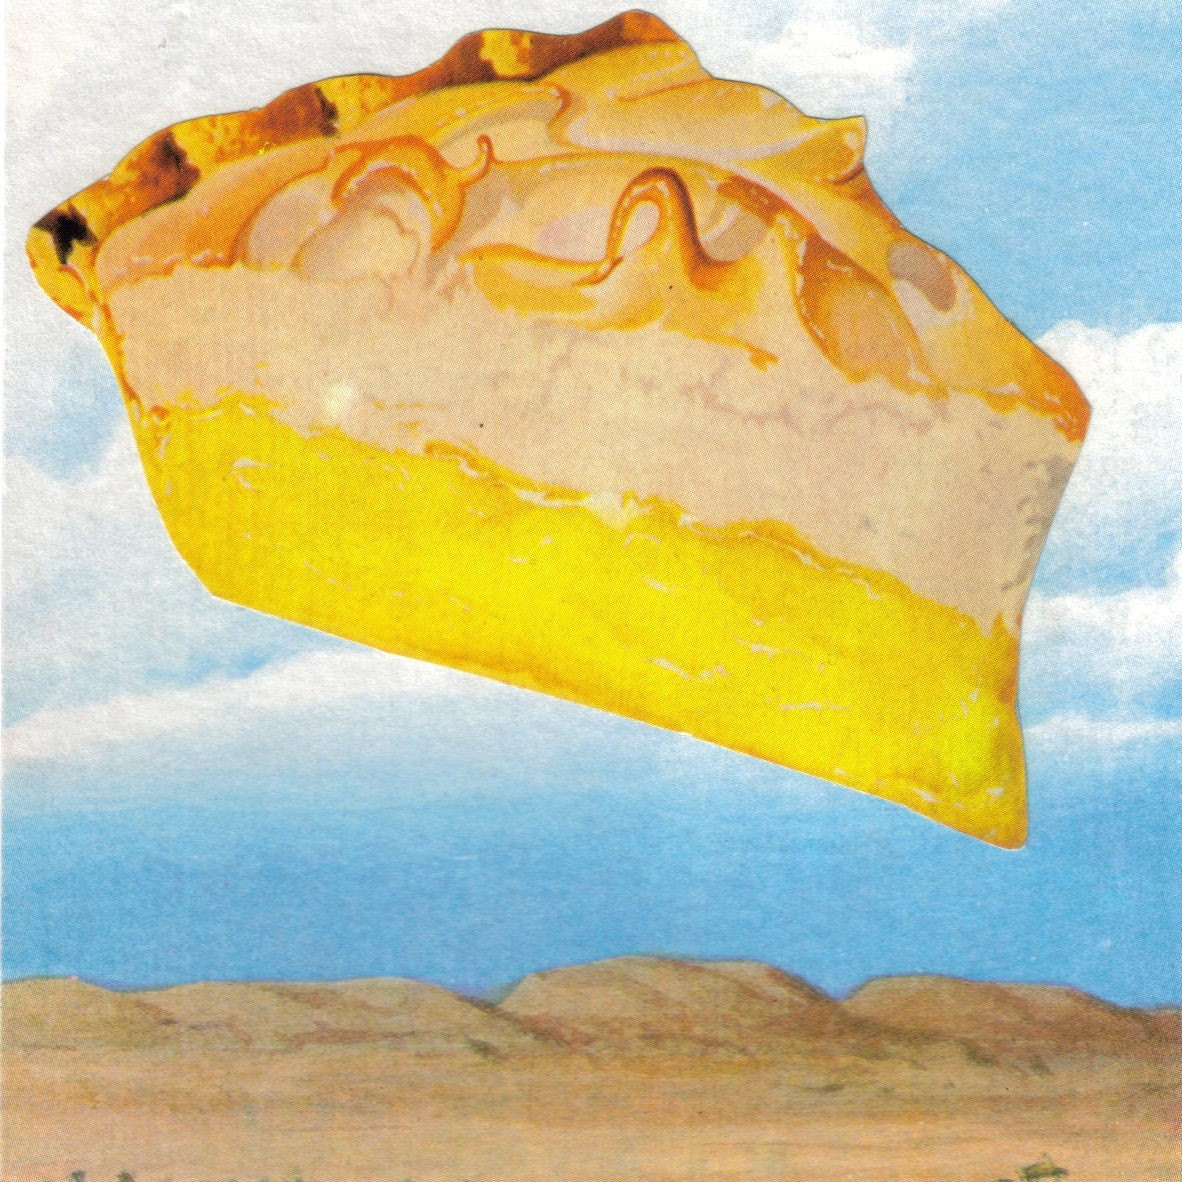 Is the Heavenly Pie Perfect or Poisonous?